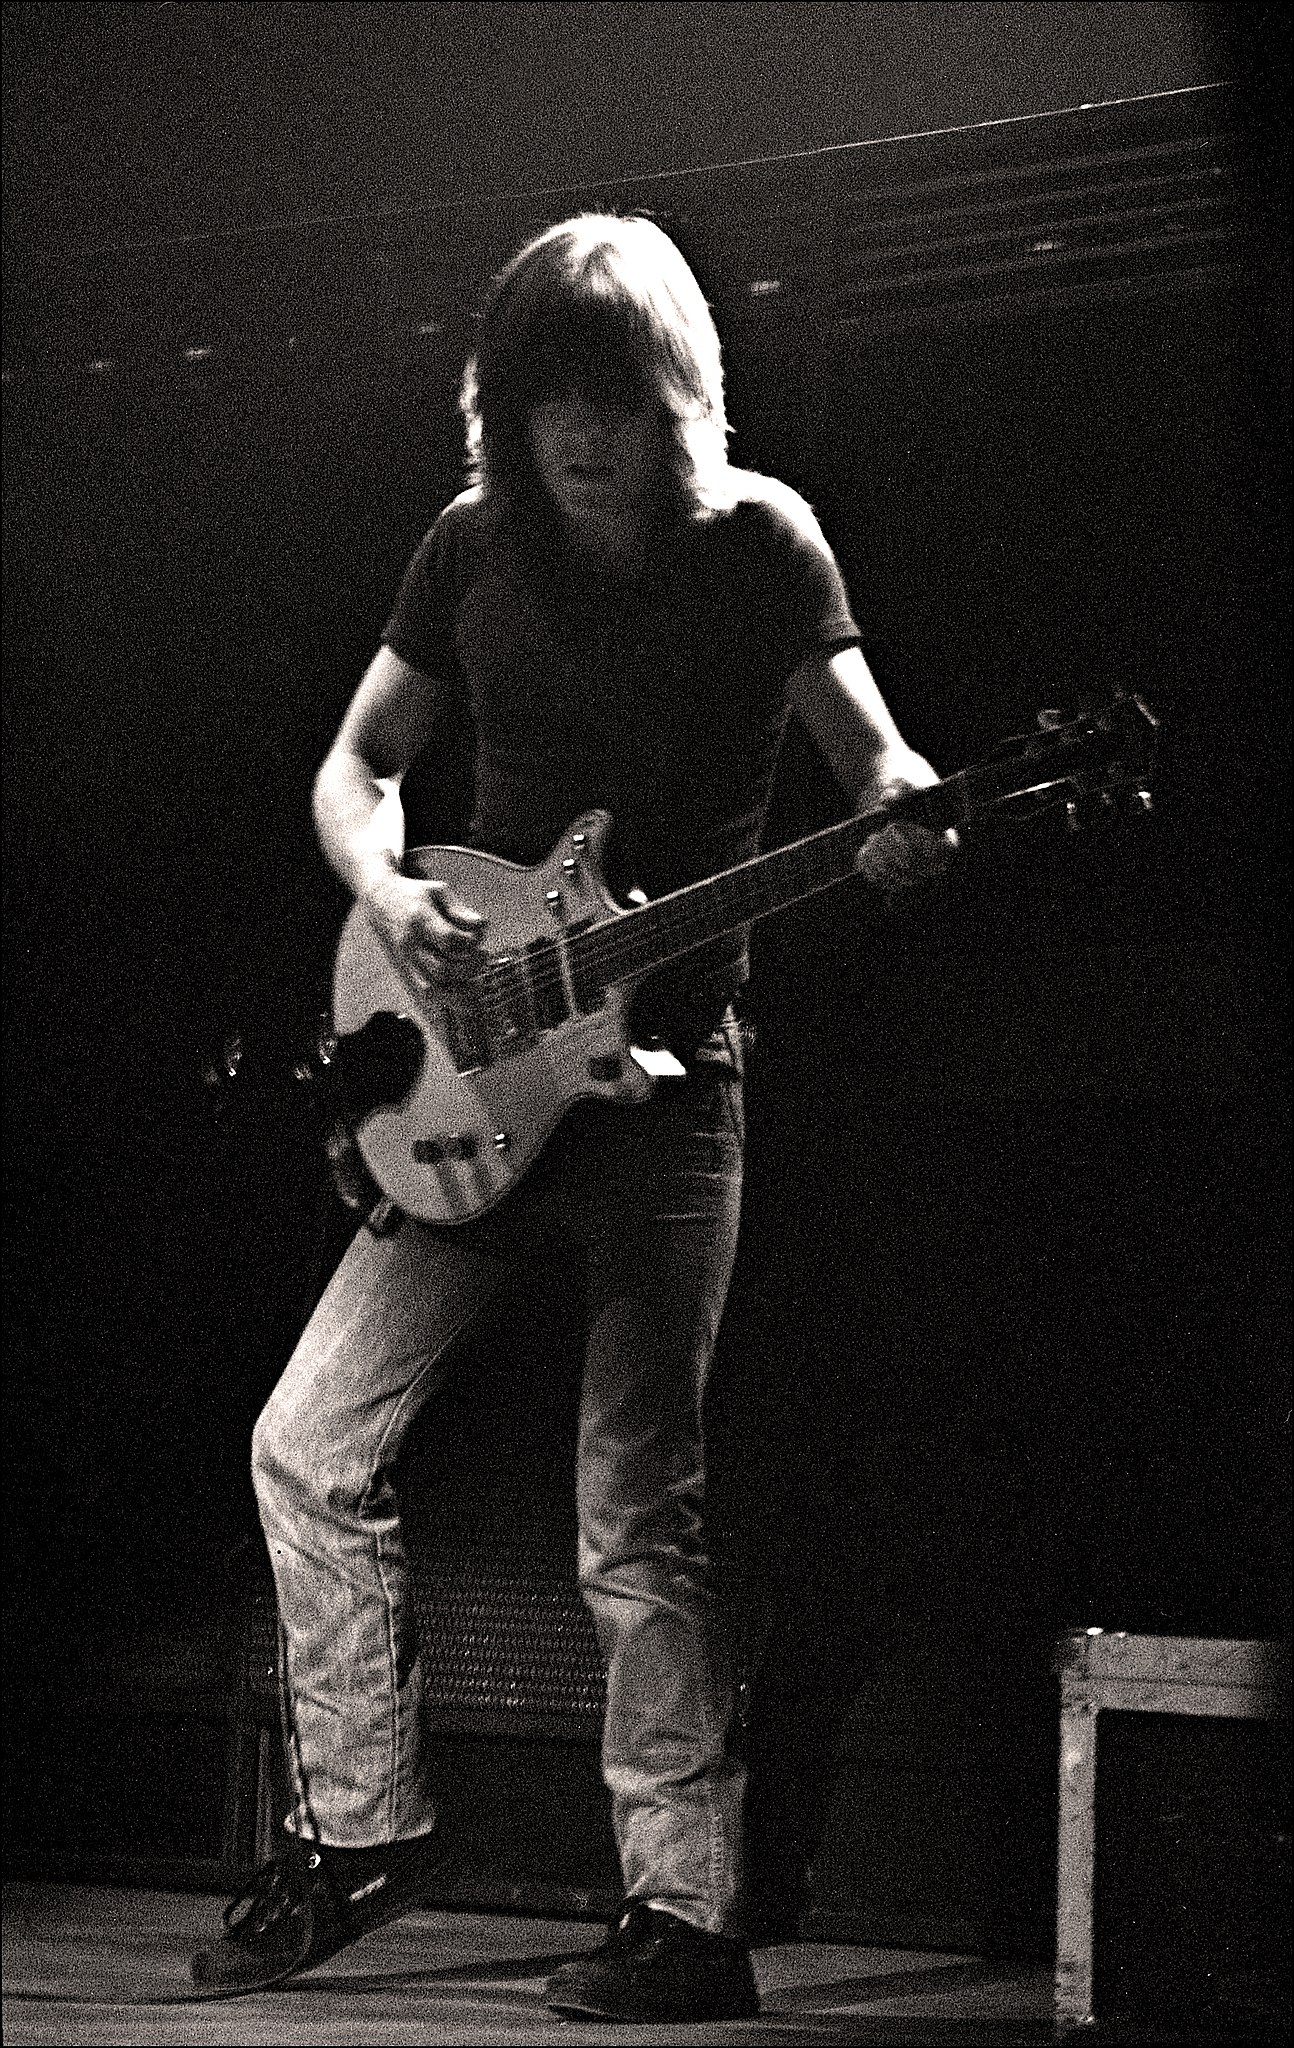 Malcolm Young height